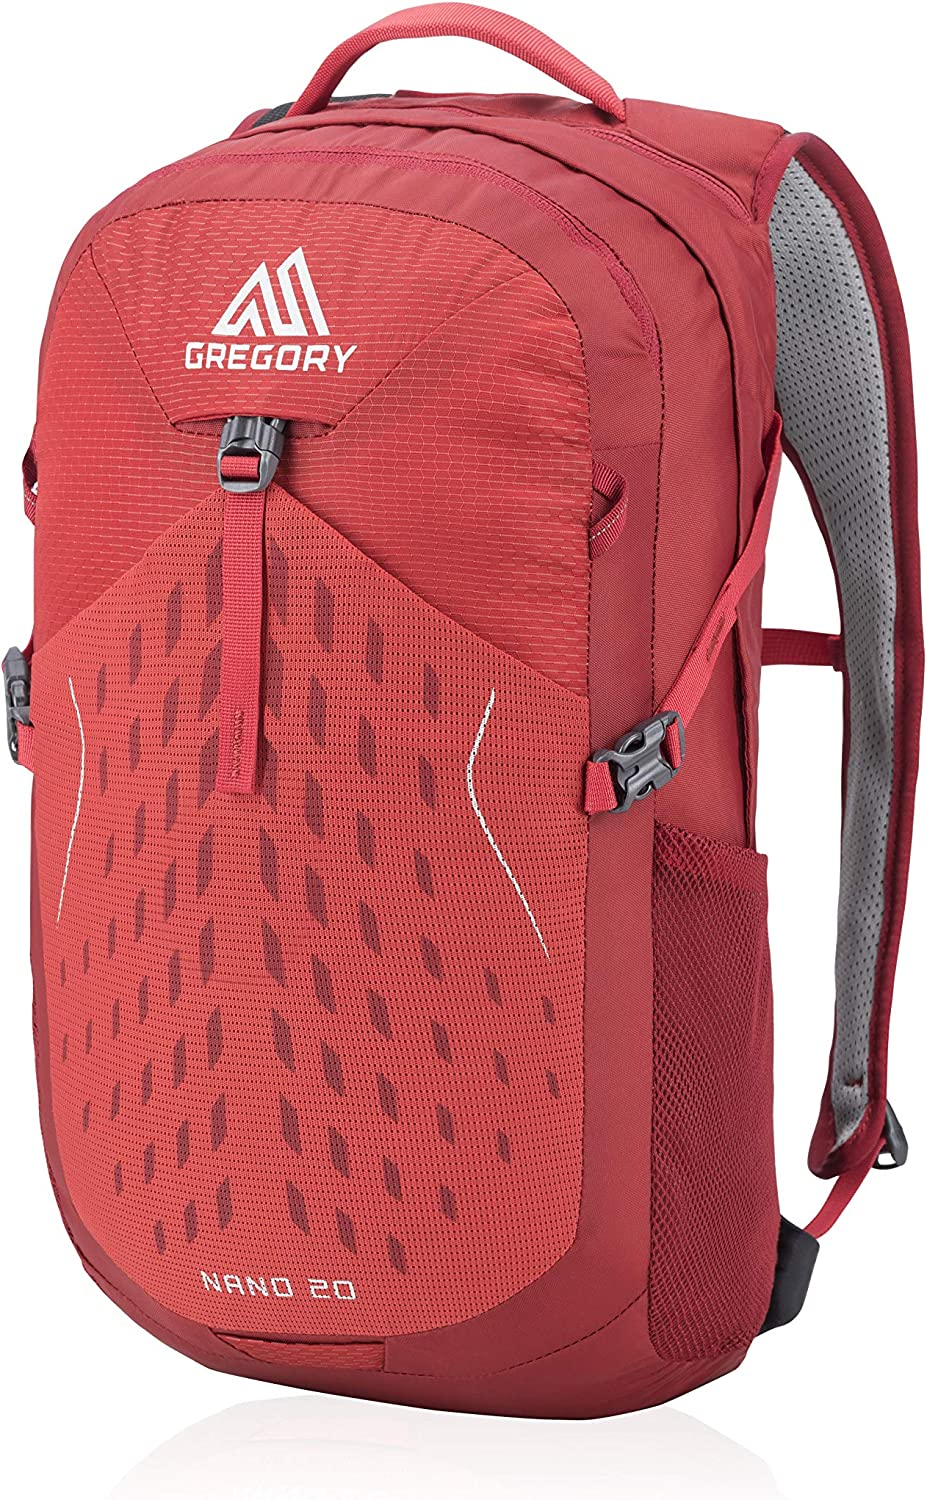 Gregory Mountain Products Nano 20 Liter Daypack, Fiery Red, One Size